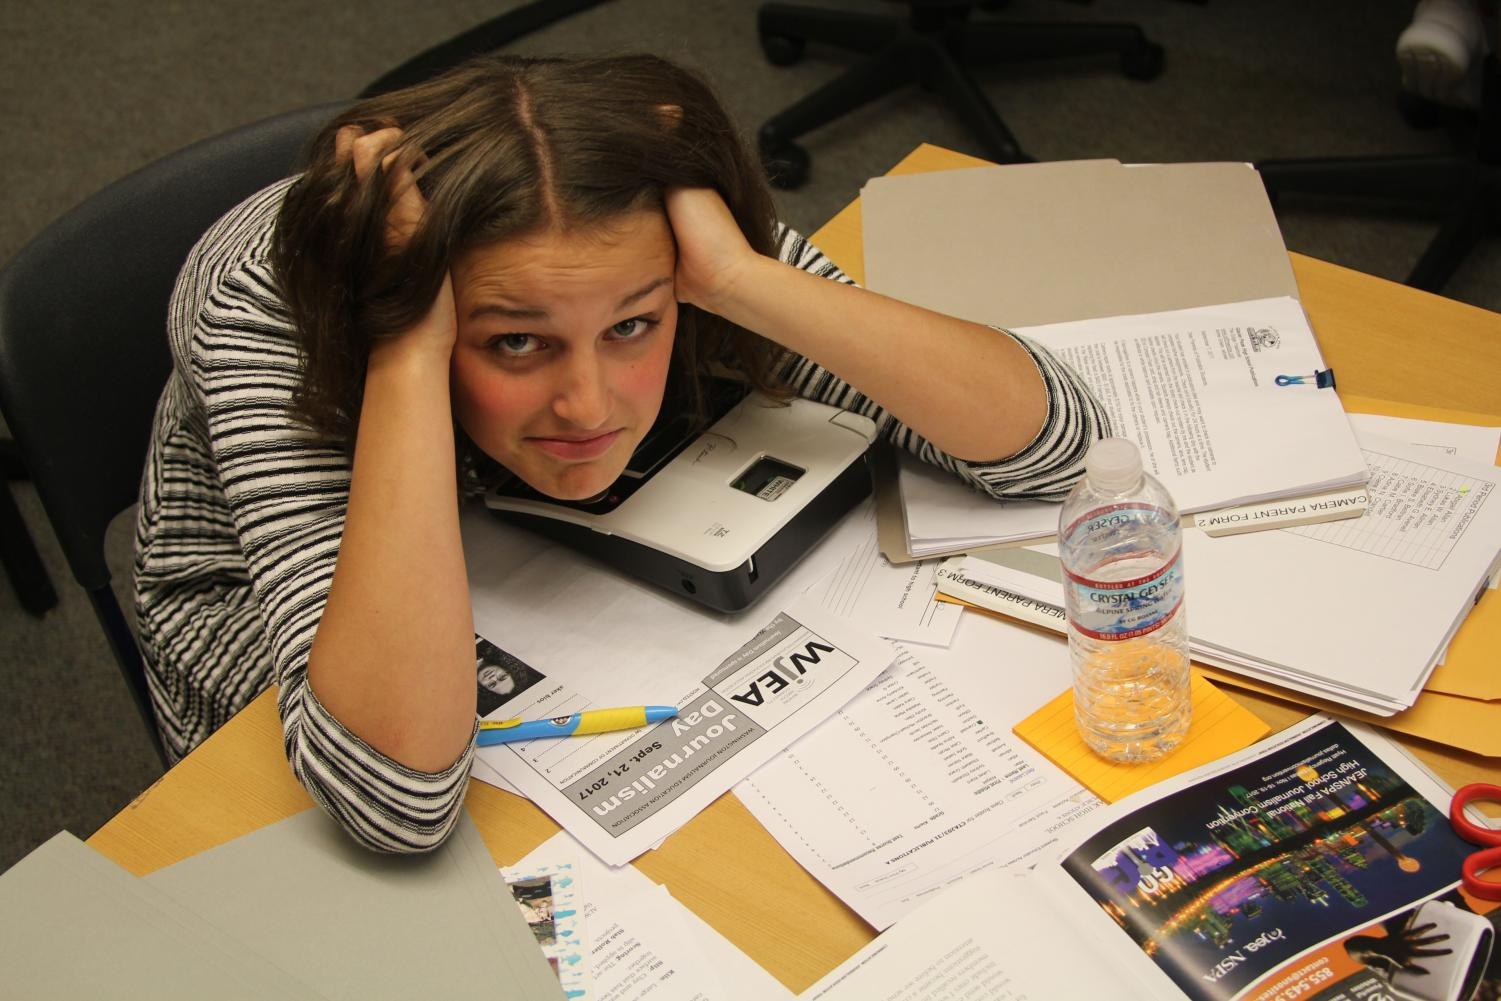 Freshman Lauren Peltier, overwhelmed with work